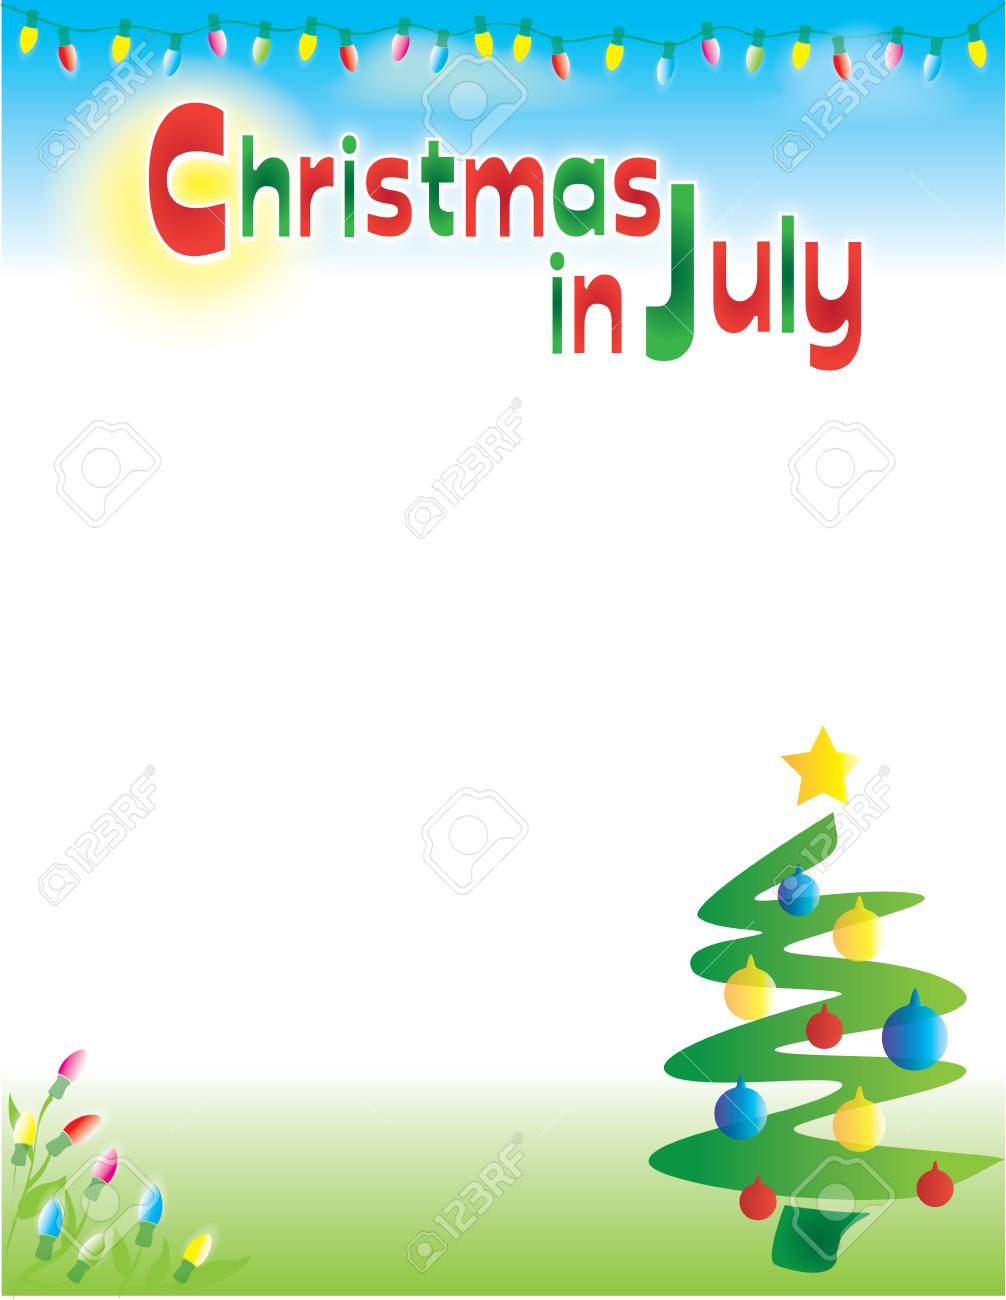 Christmas In July Clipart Free.Christmas In July Background Template Postcard Flyer